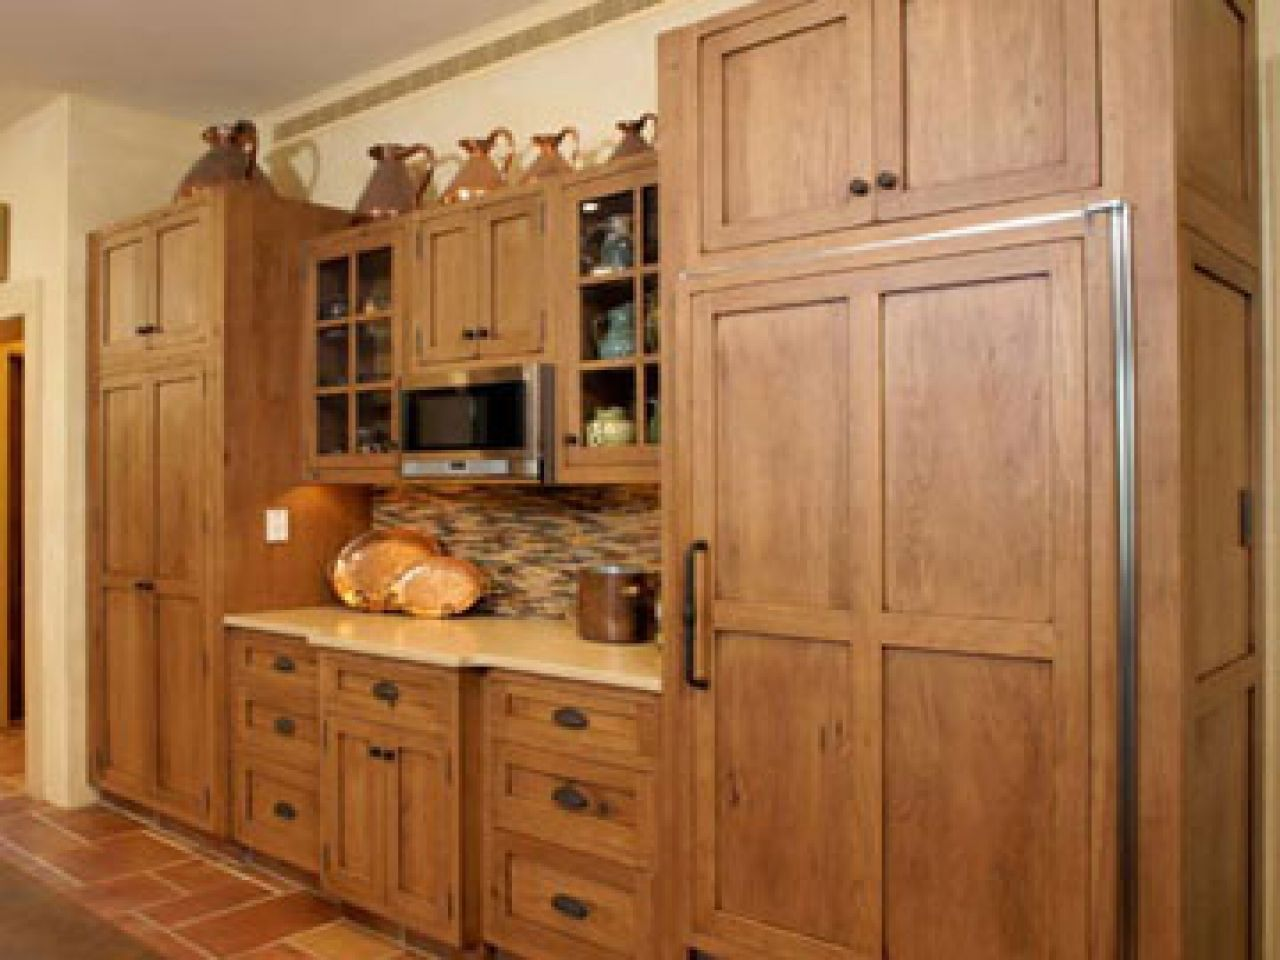 hickory shaker style kitchen cabinets redos alder new ideas in